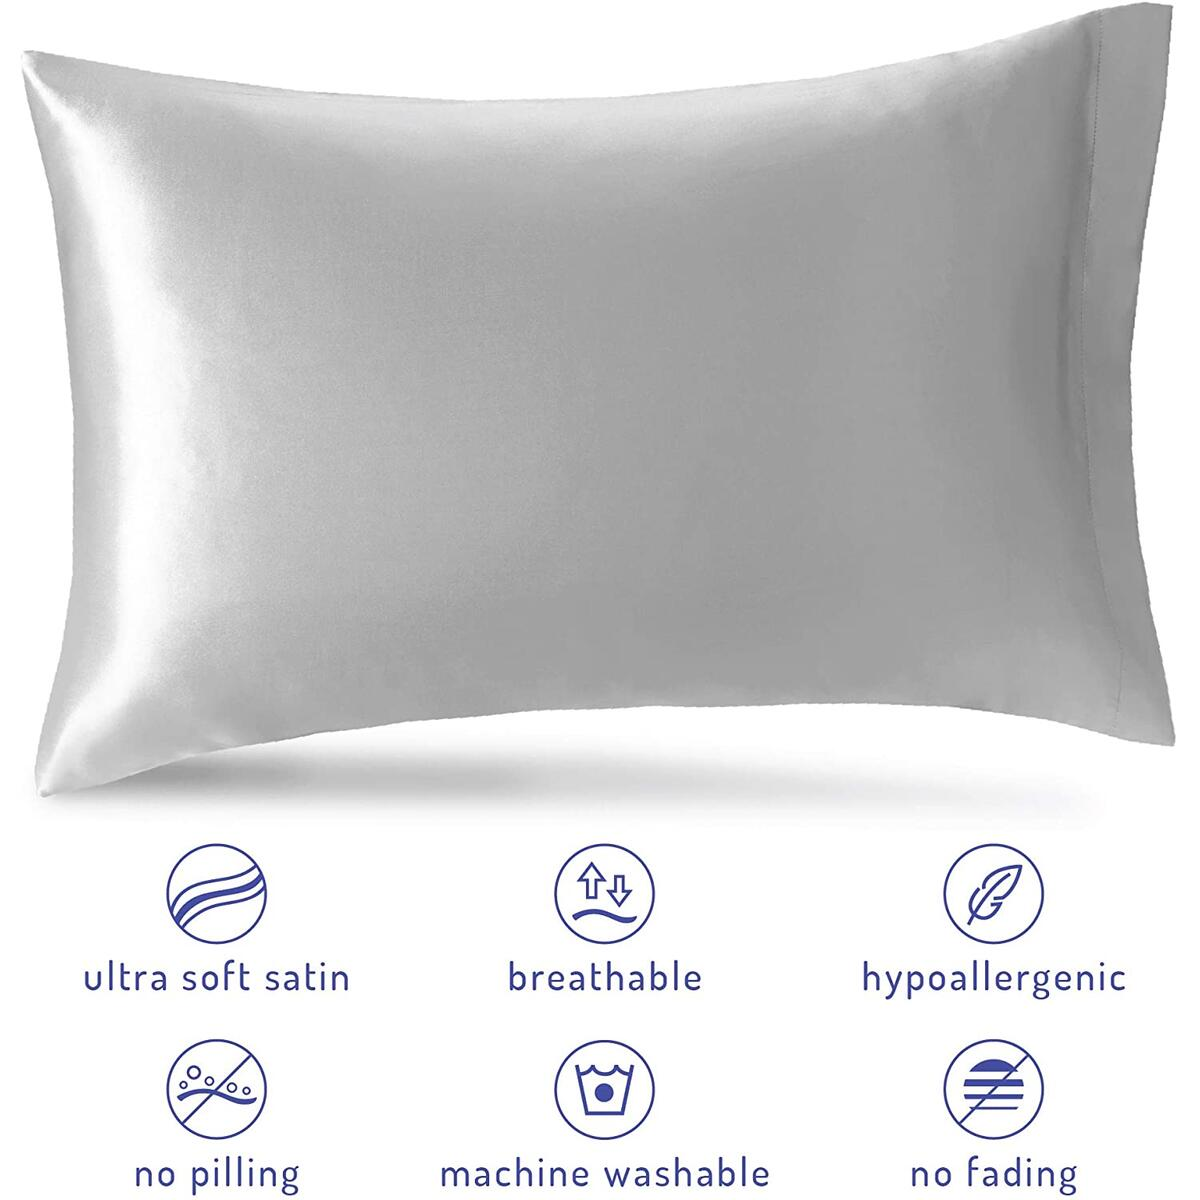 2 Pack -Queen Size ANY COLOR - Silky Satin Pillowcase for Hair and Skin    Queen Pillow Case, 20 x 30 Inch – Reduce Skin Irritation & Frizzy Hair   Retains Color in Easy Machine Wash & Dry